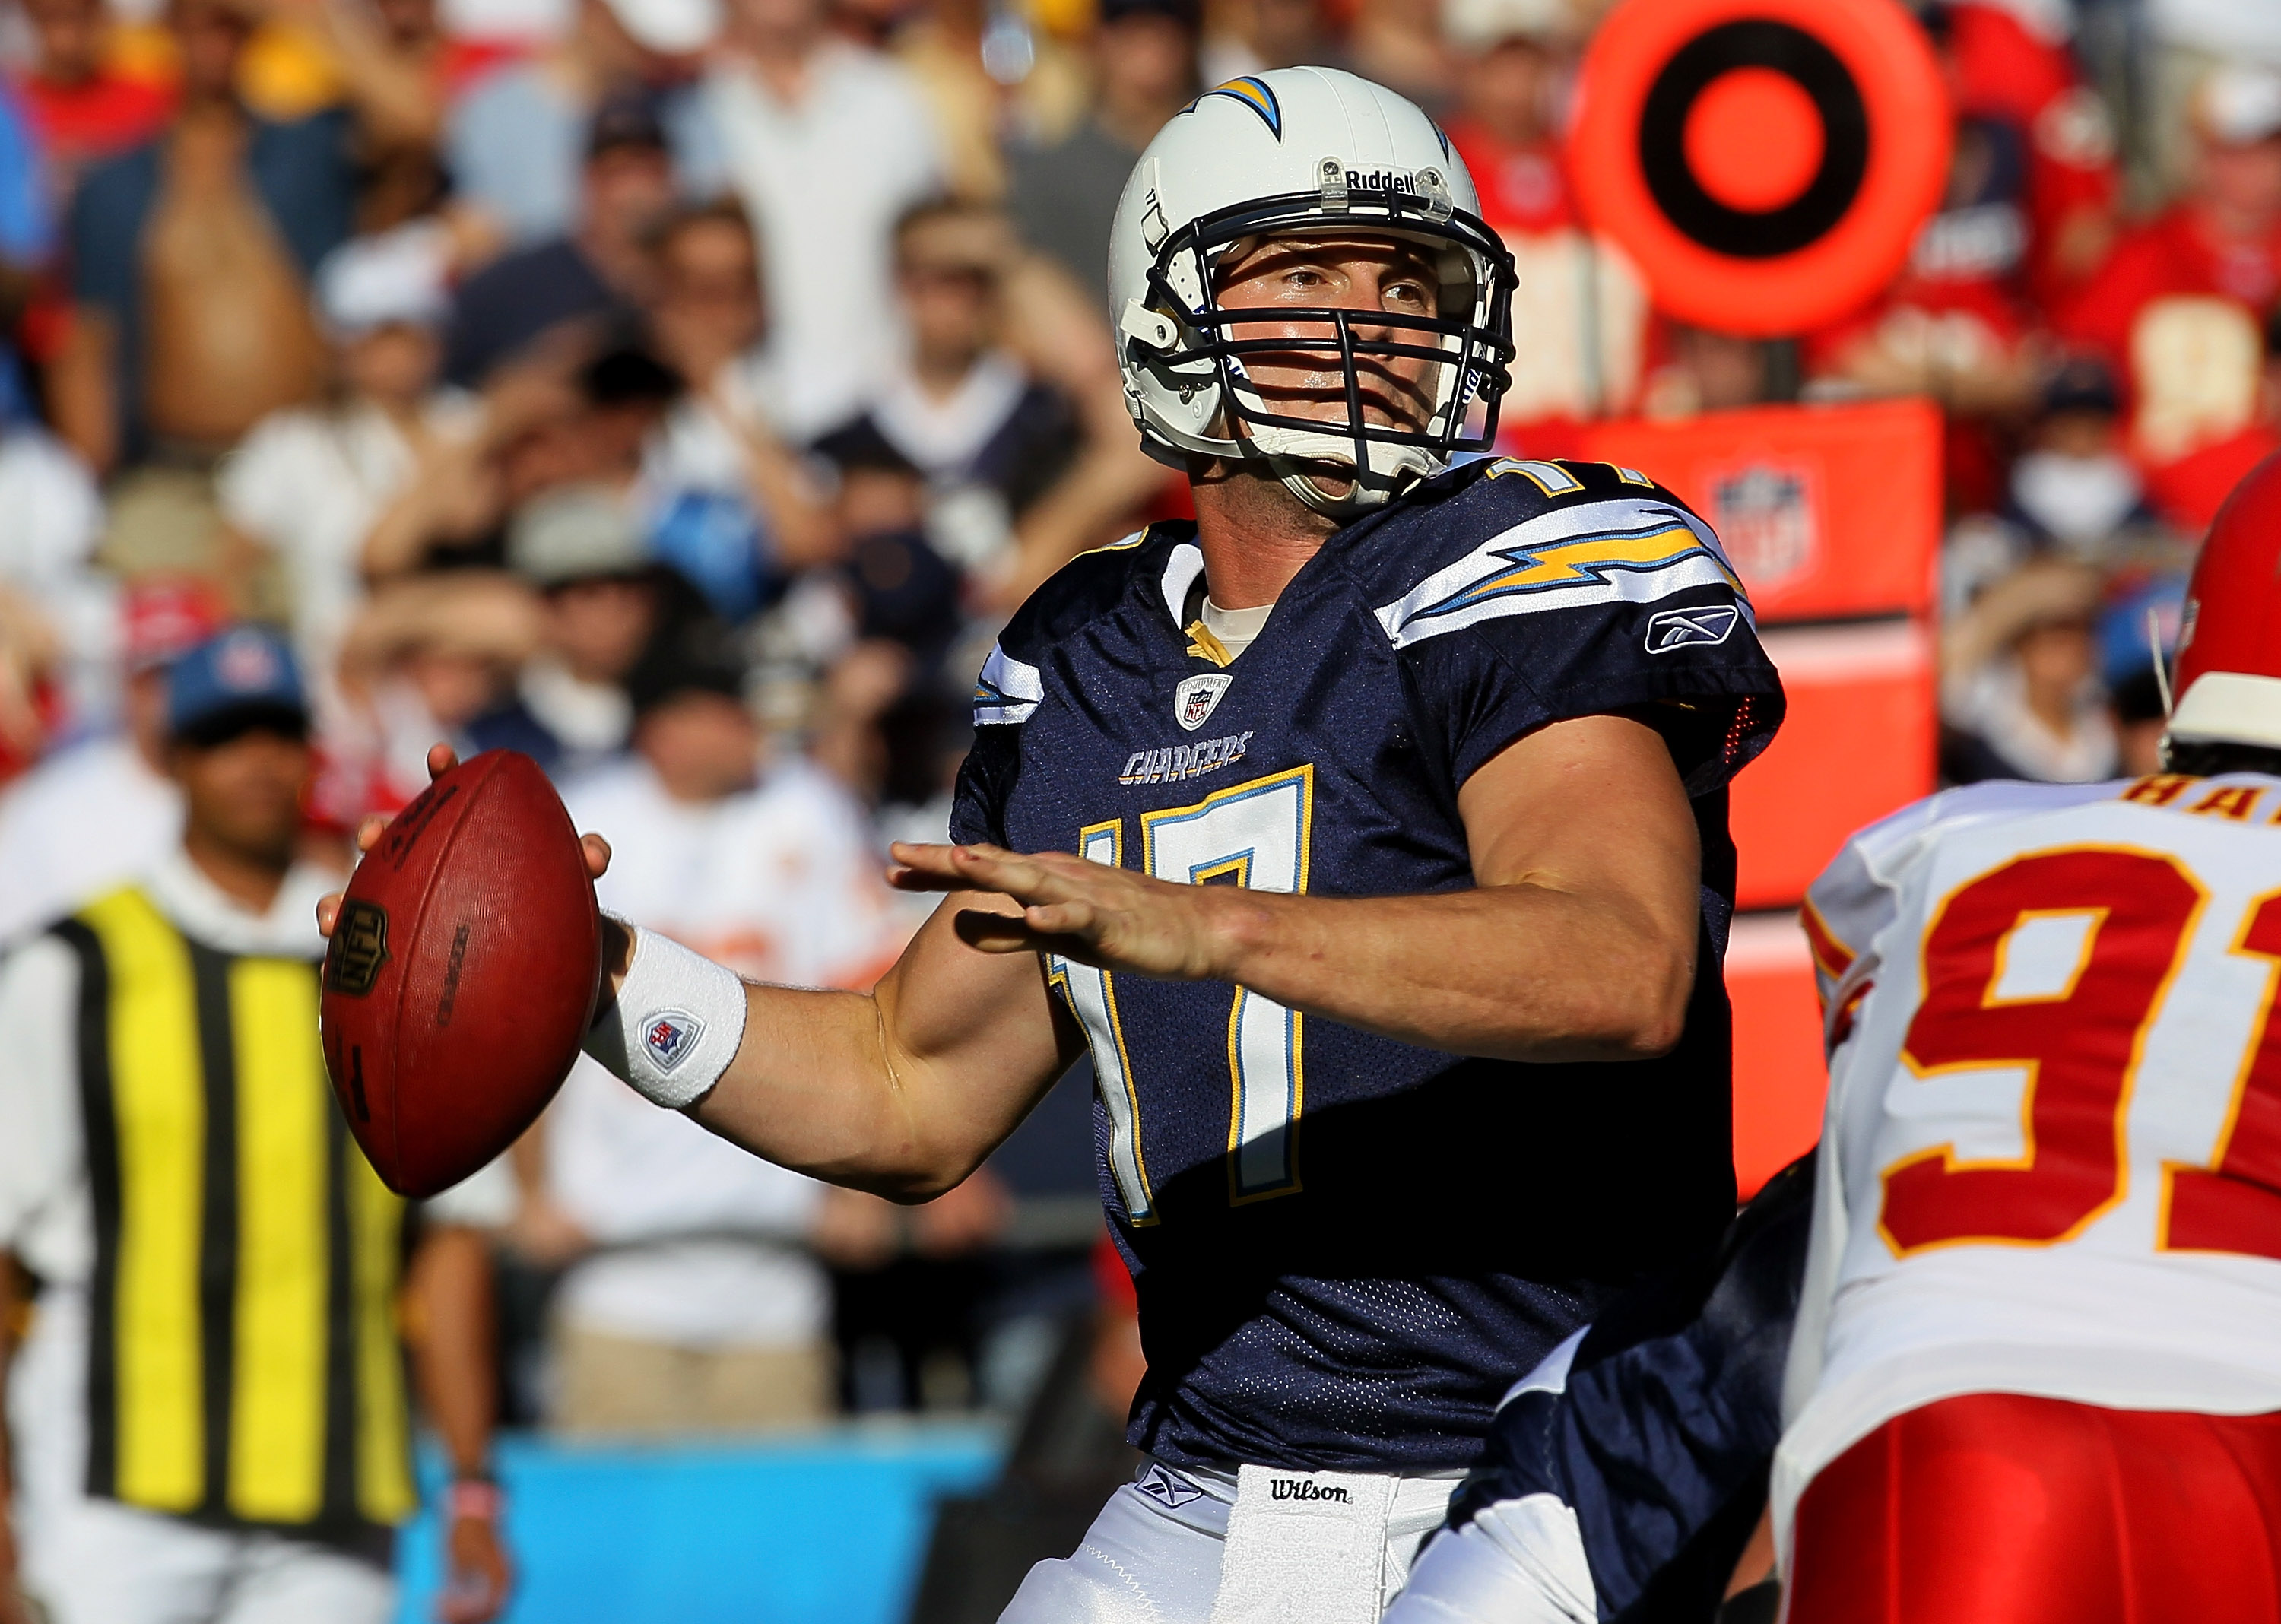 SAN DIEGO - DECEMBER 12:  Quarterback Philip Rivers #17 of the San Diego Chargers throws a pass against the Kansas City Chiefs at Qualcomm Stadium on December 12, 2010 in San Diego, California.  The Chargers won 31-0.  (Photo by Stephen Dunn/Getty Images)